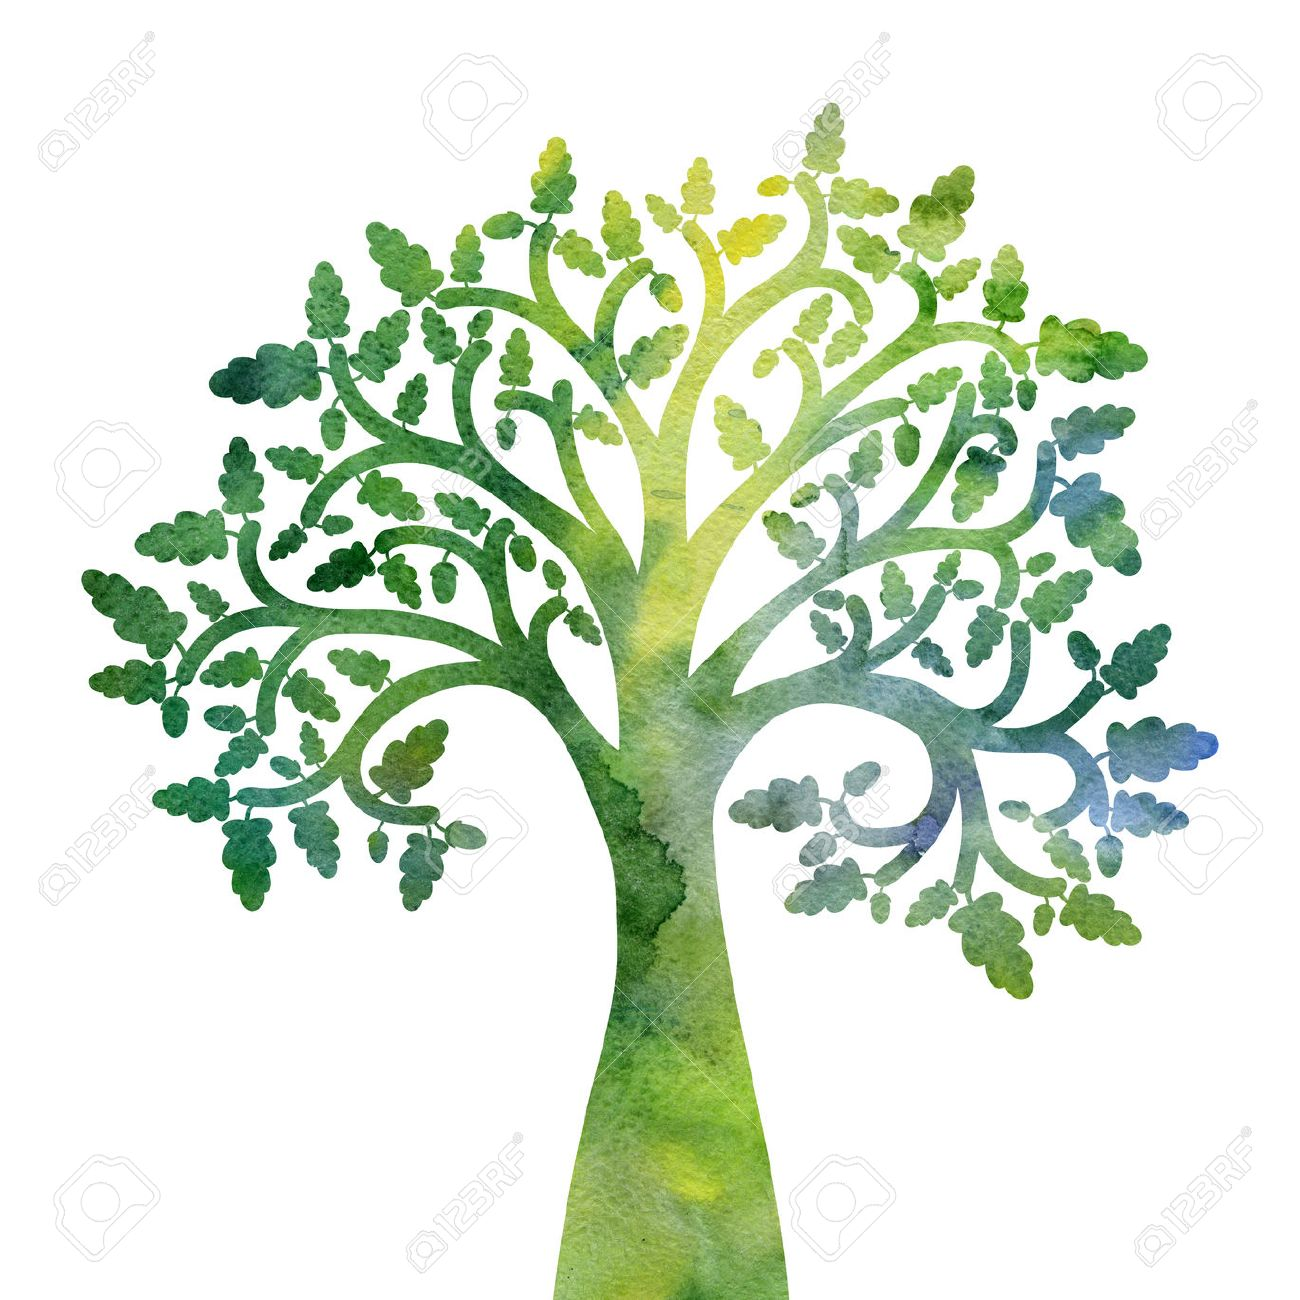 Tree Leaf Drawing at GetDrawings.com   Free for personal use Tree ...